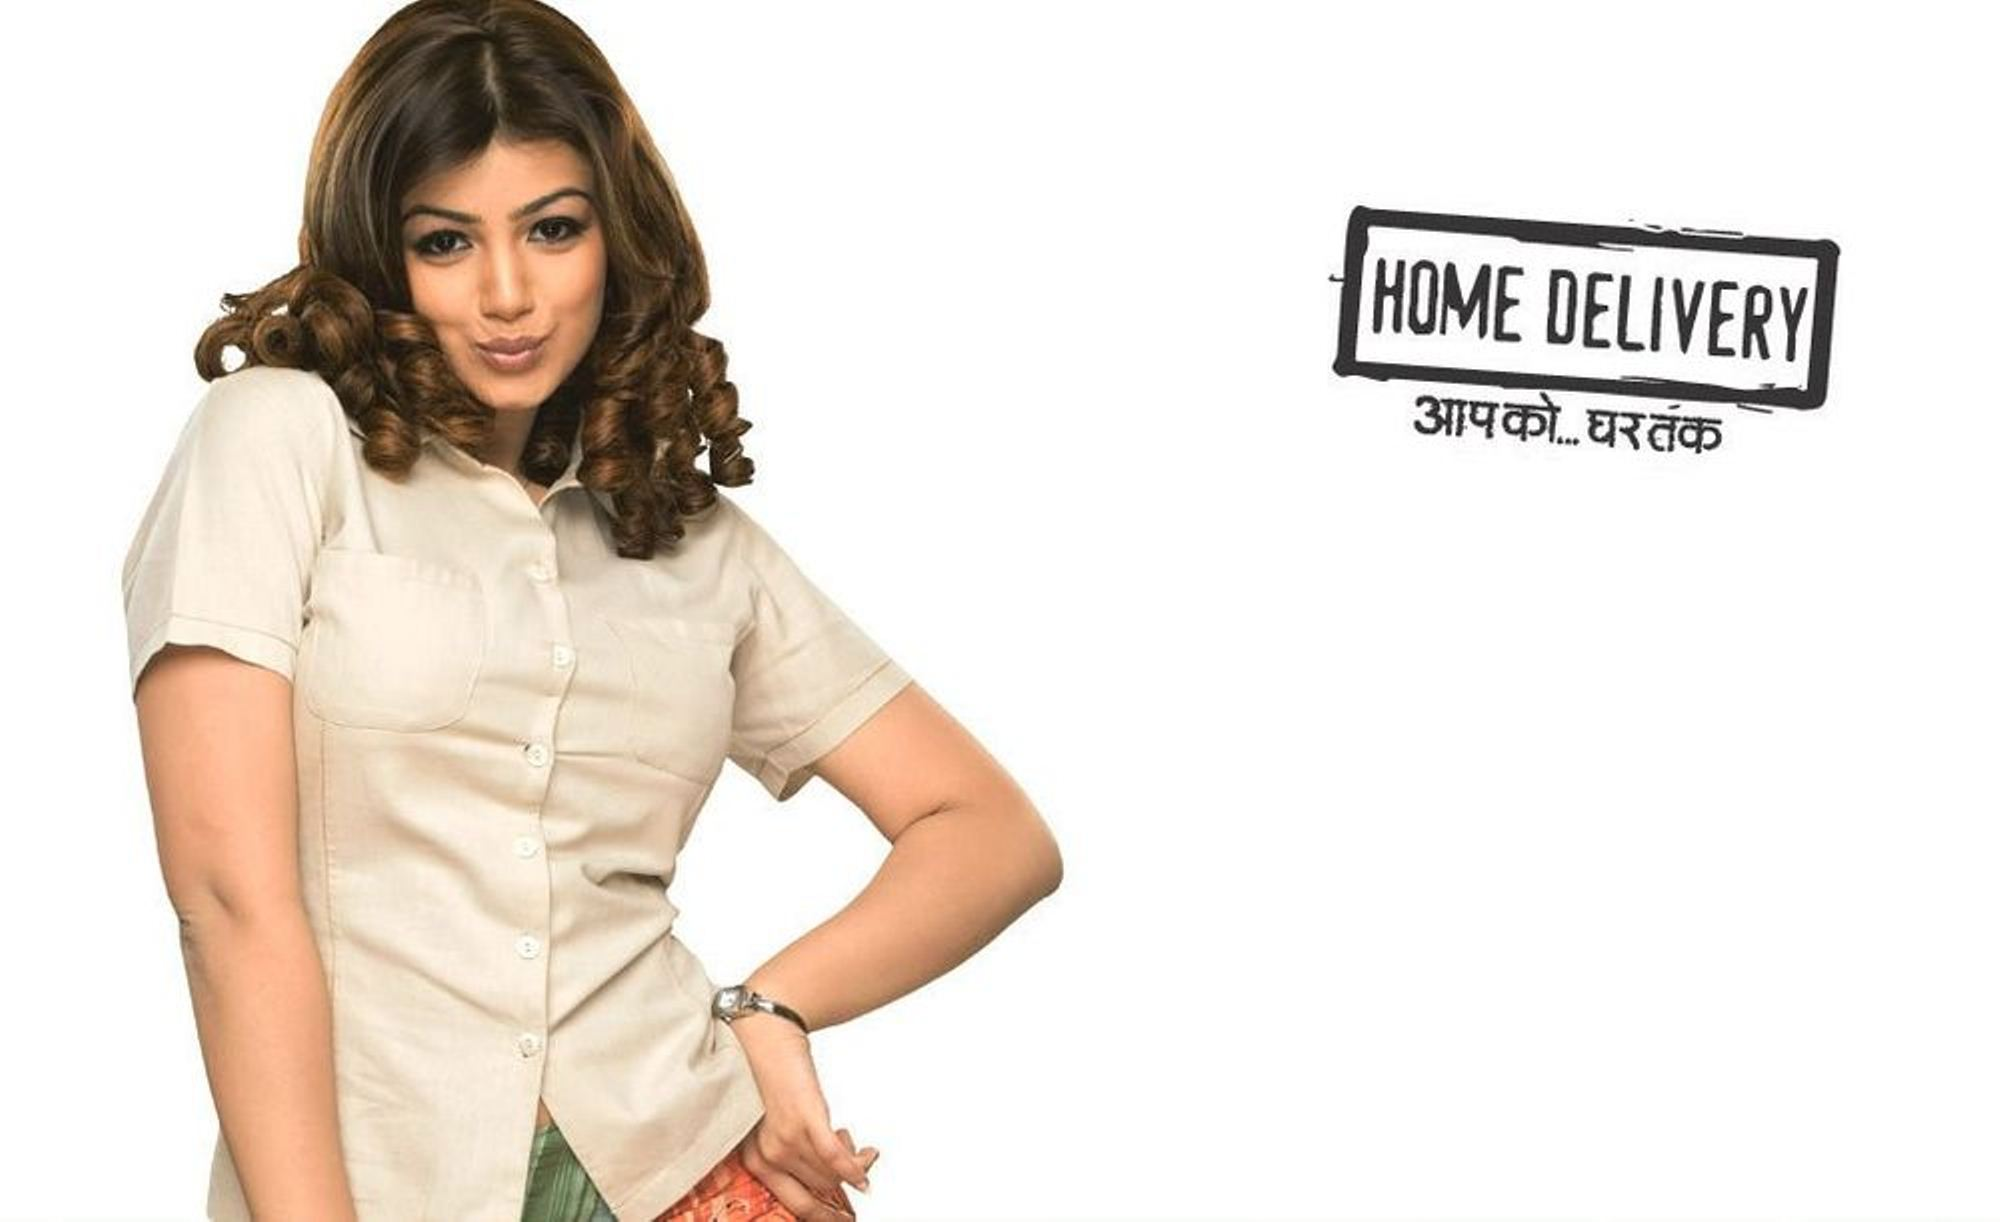 Ayesha Takia in Home Delivery: Aapko... Ghar Tak (2005)